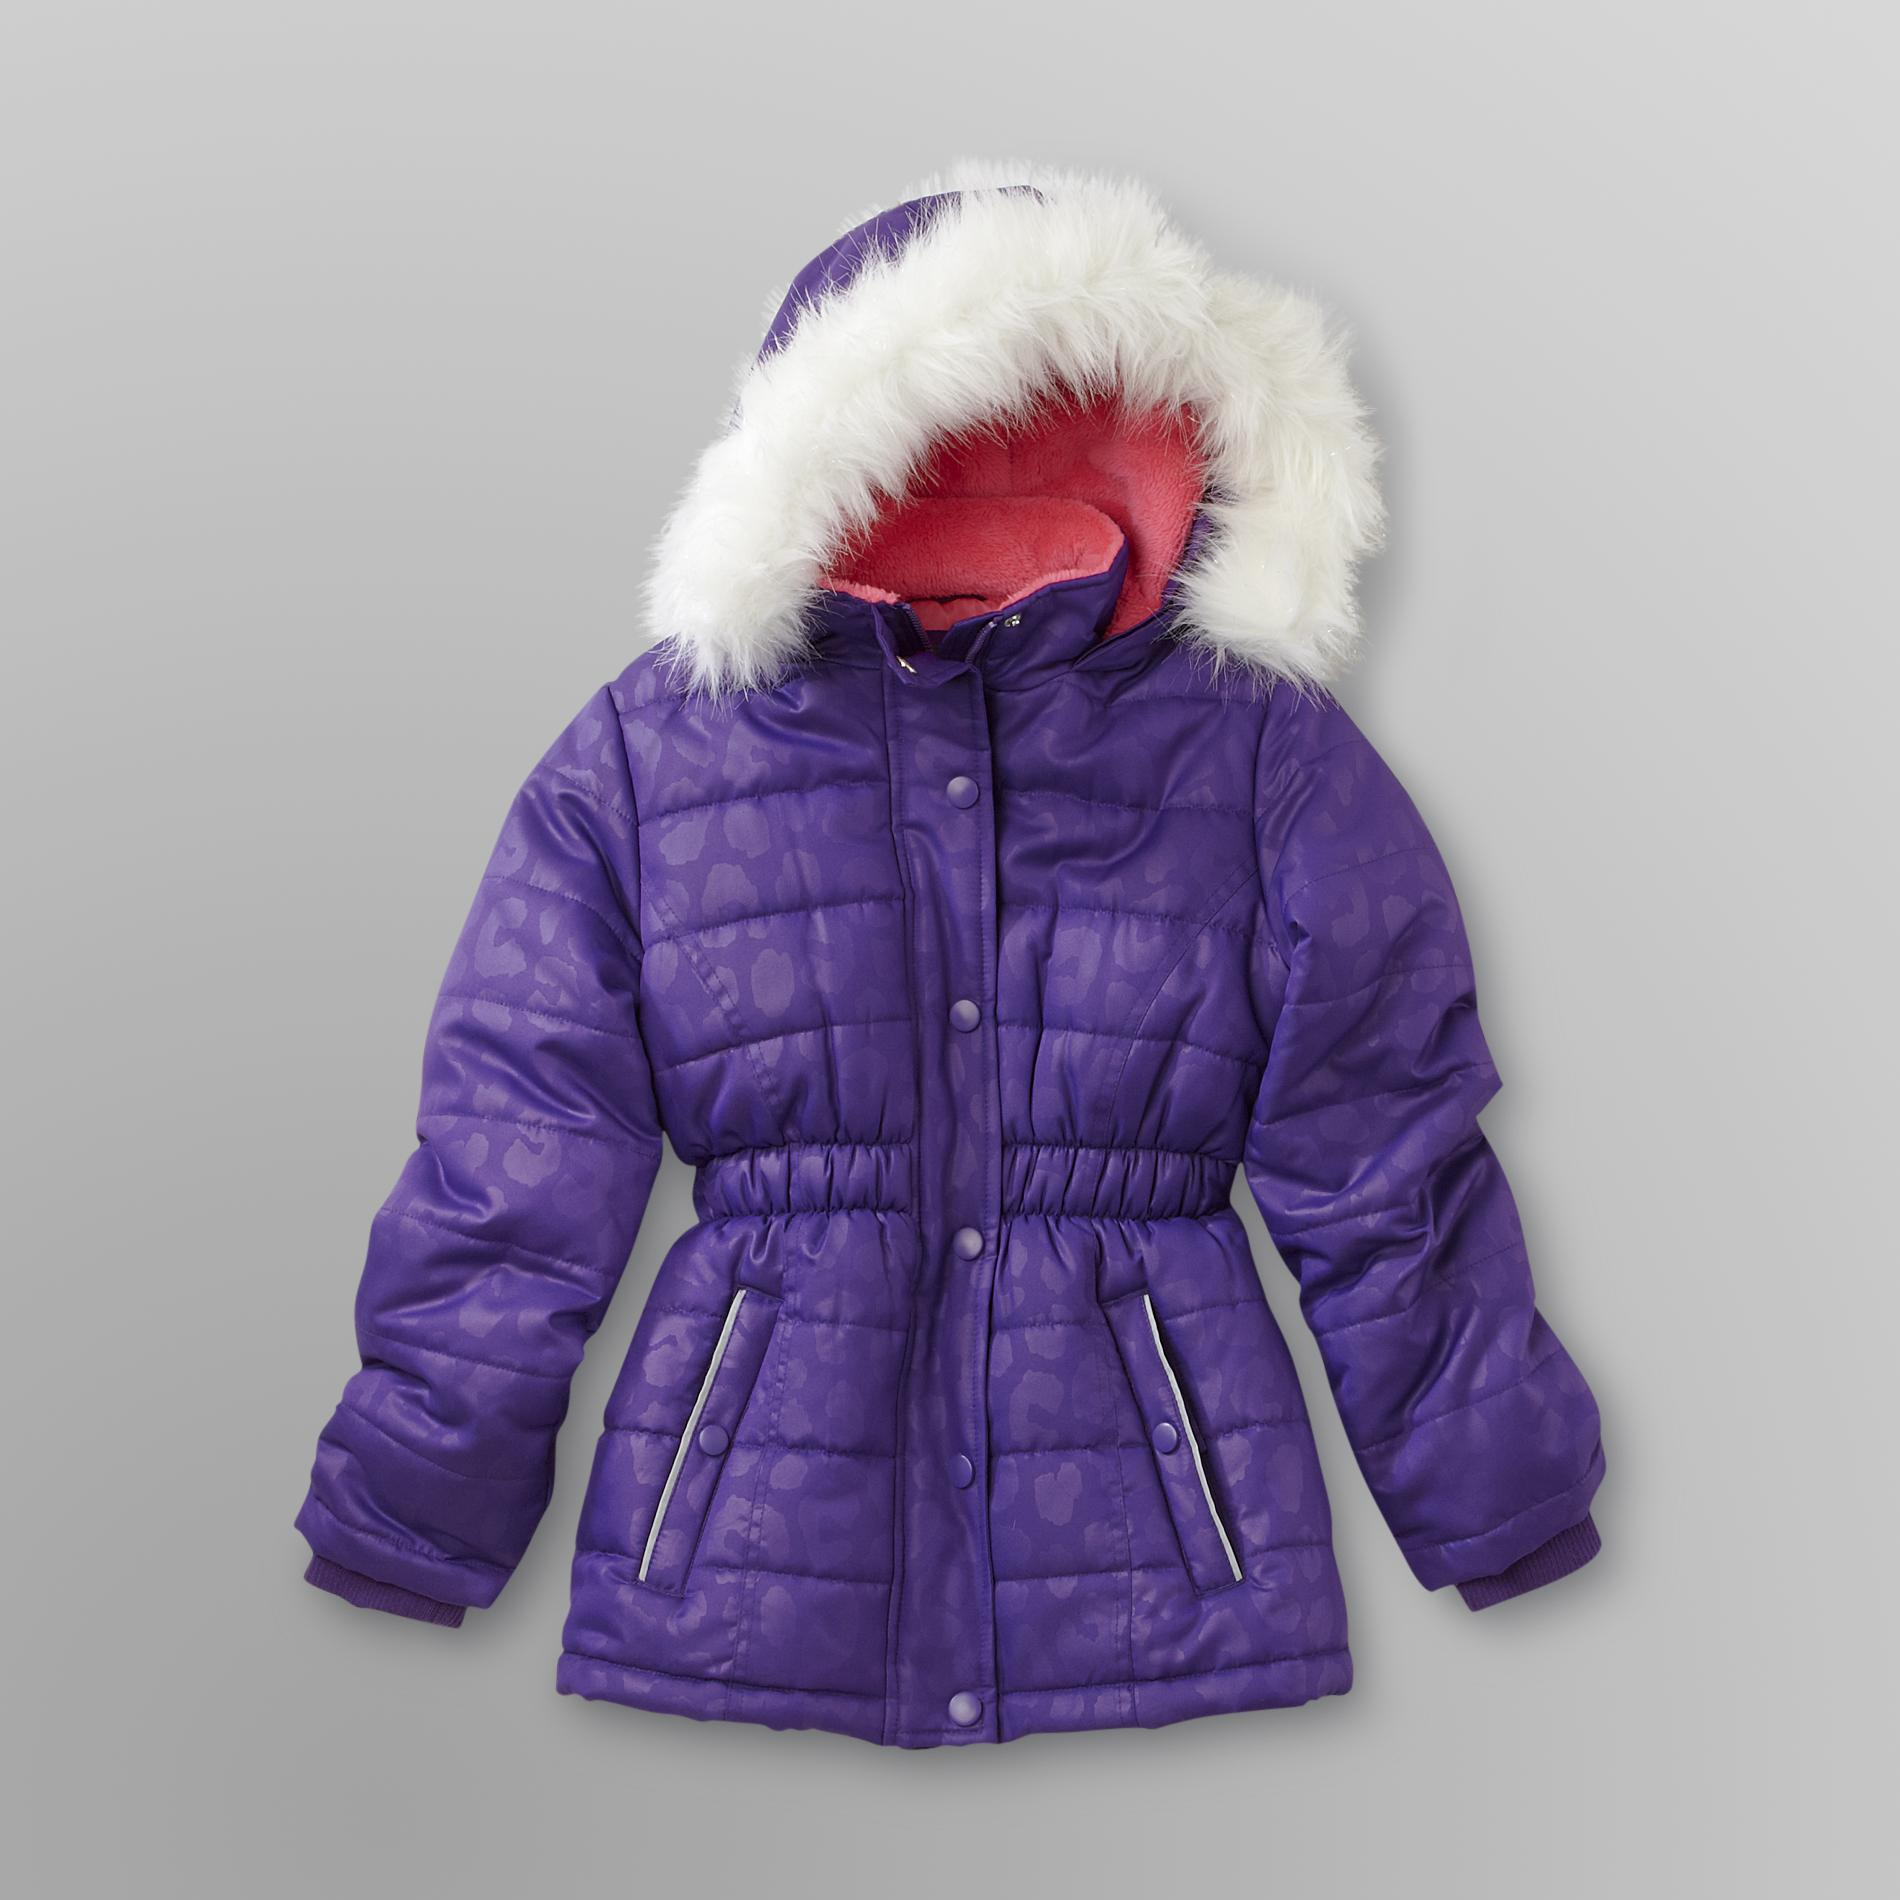 Athletech  Girl's Hooded Puffer Coat